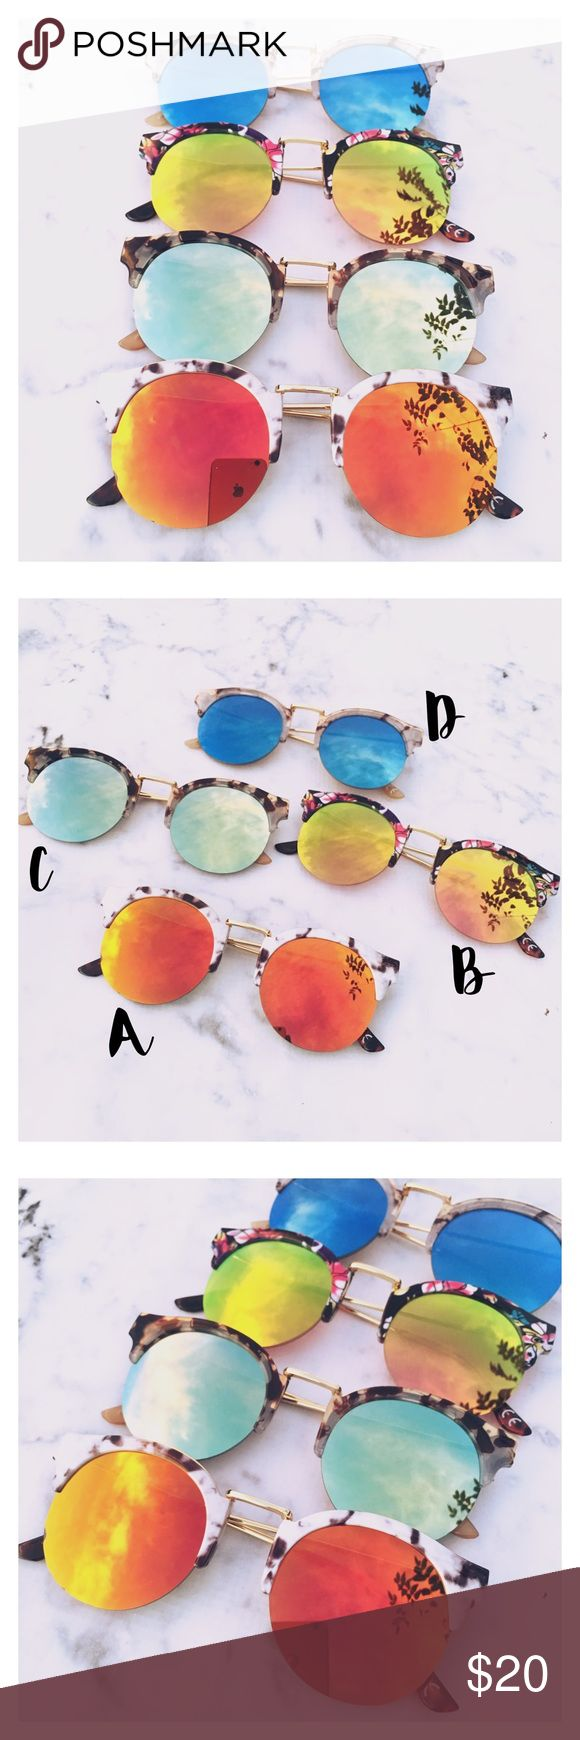 Just In- Floral Aviator Sunglasses Chic floral print Aviator sunglasses. Perfect for spring summer. Festival sunglasses. Mirrored sunglasses. UV protection. Brand new. Top quality. Price is firm unless bundled. Thank you 💕 Accessories Glasses